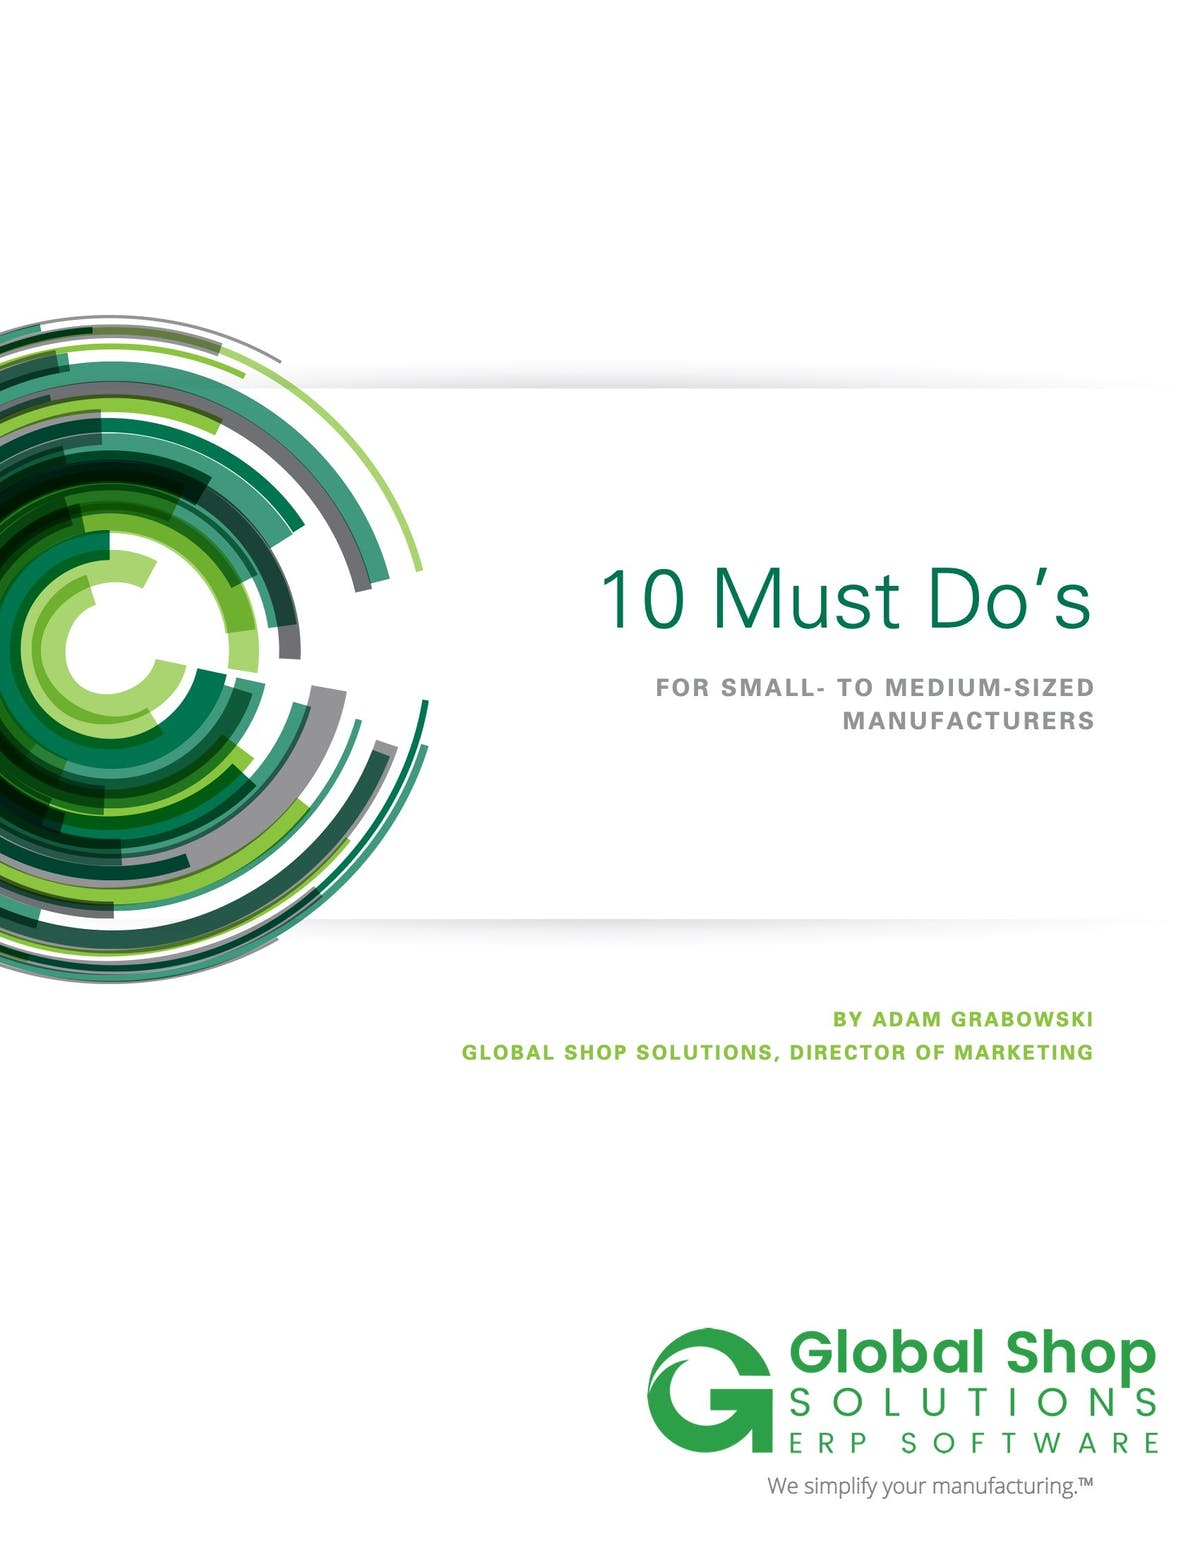 Global Shop Solutions White Paper - 10 Must-Dos for Small- to Medium-Sized Manufacturers